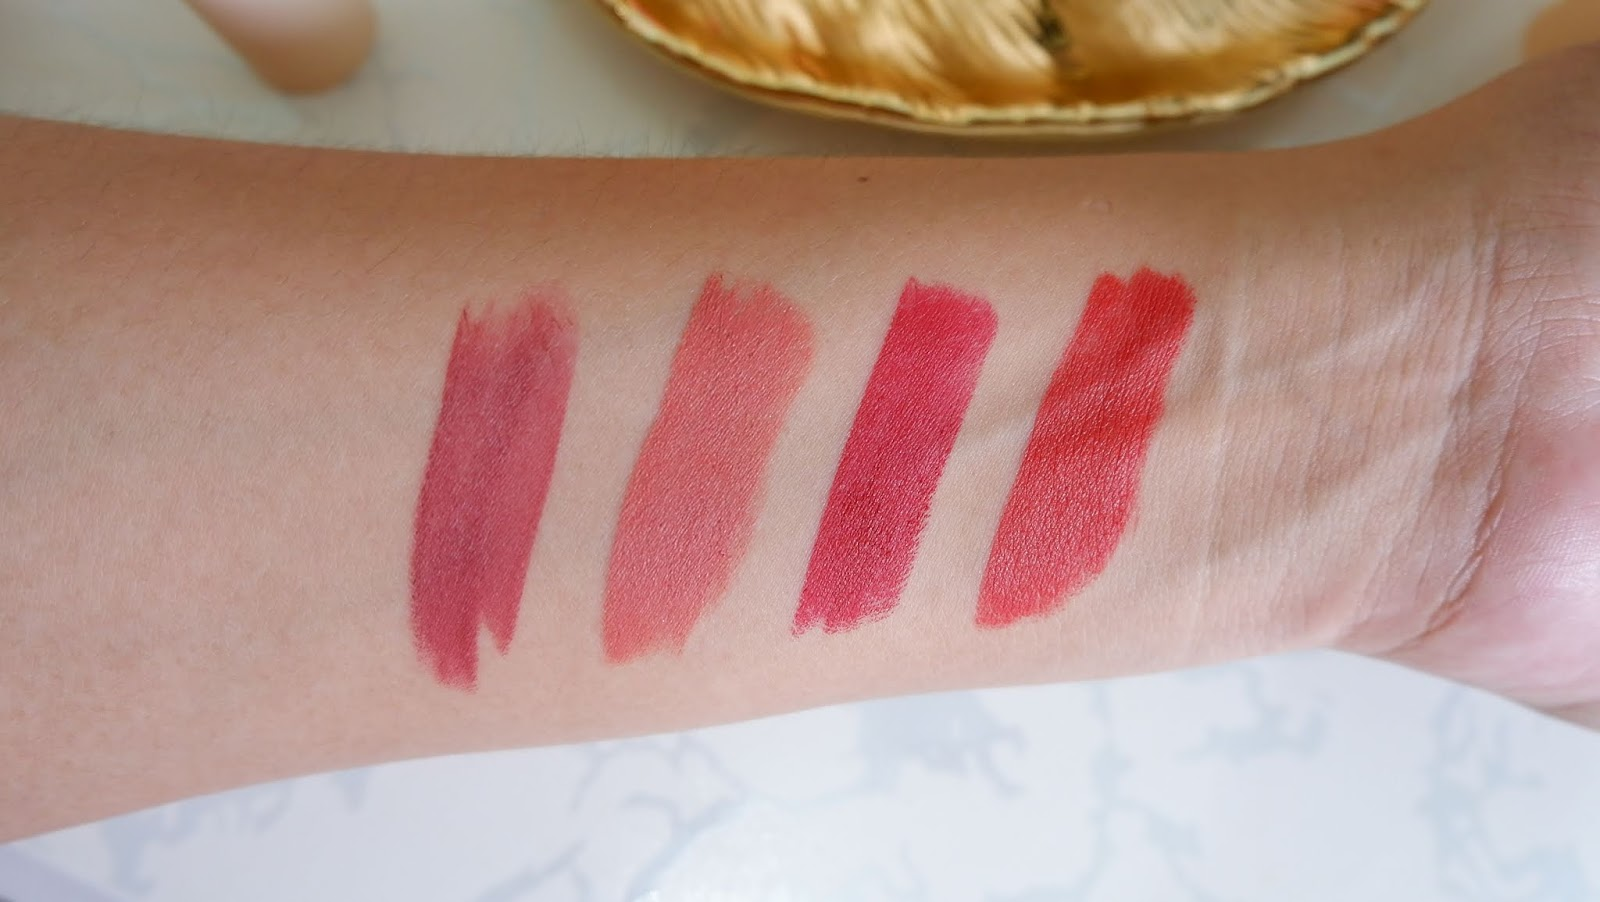 SUNNIES FACE FLUFFMATTE LIPSTICK REVIEW